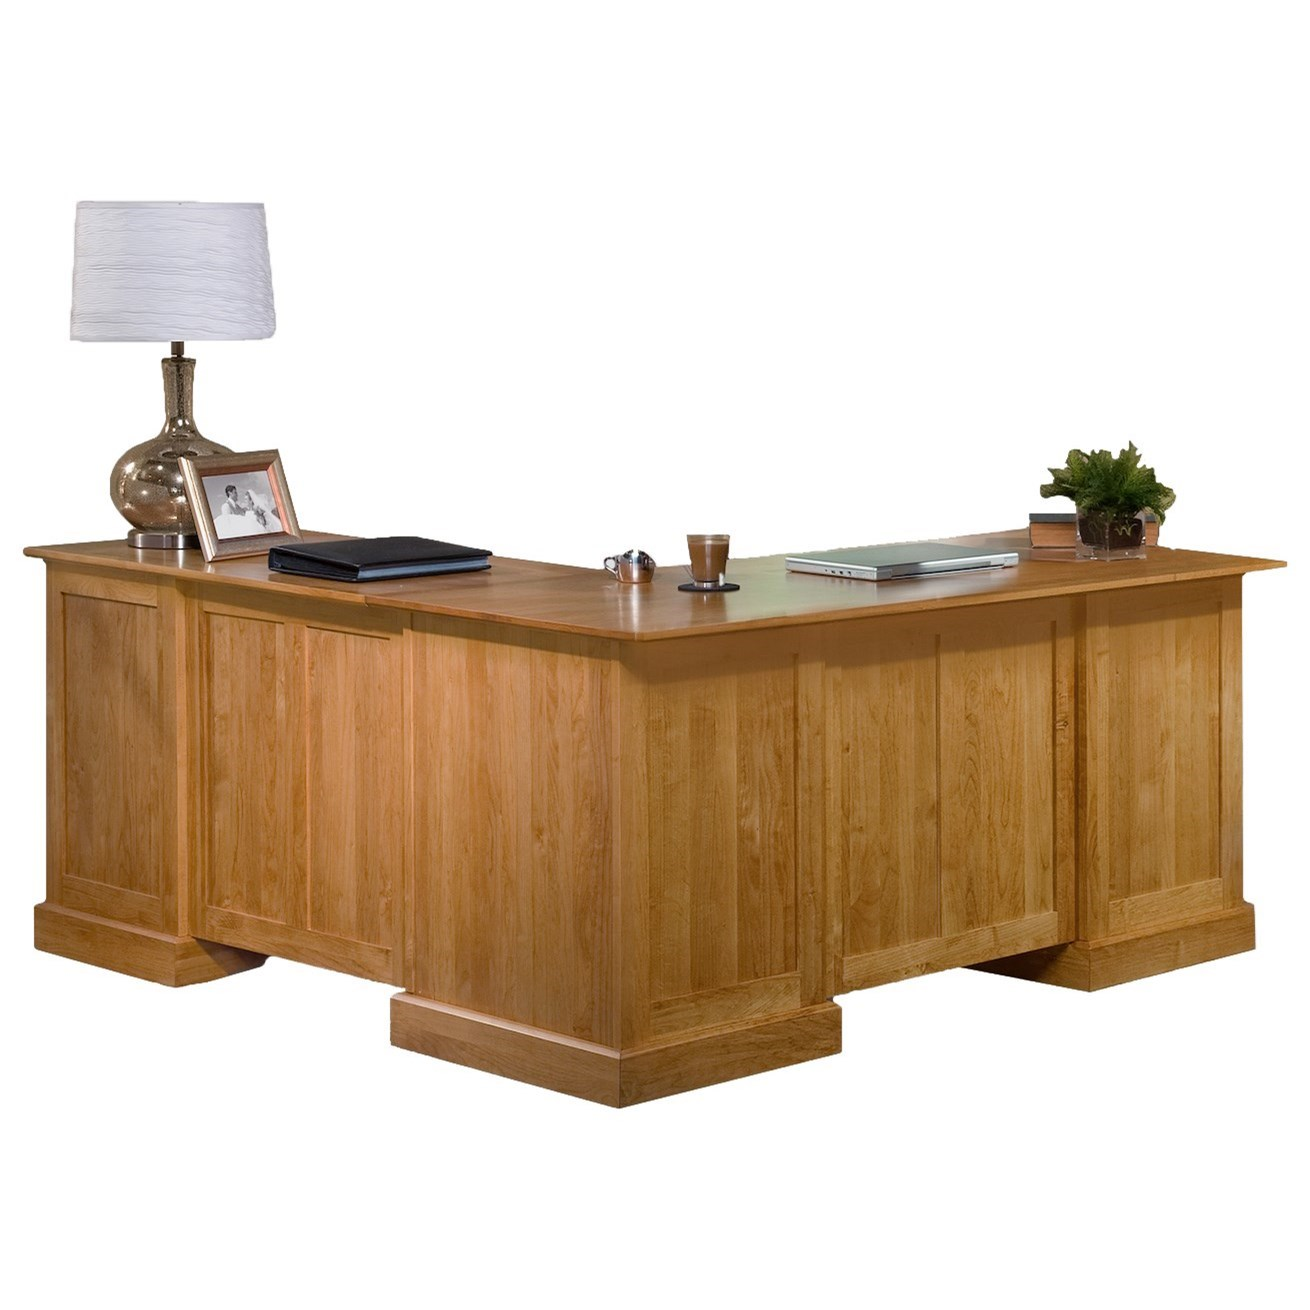 Executive Home Office L Shape Desk and Return by Archbold Furniture at Mueller Furniture